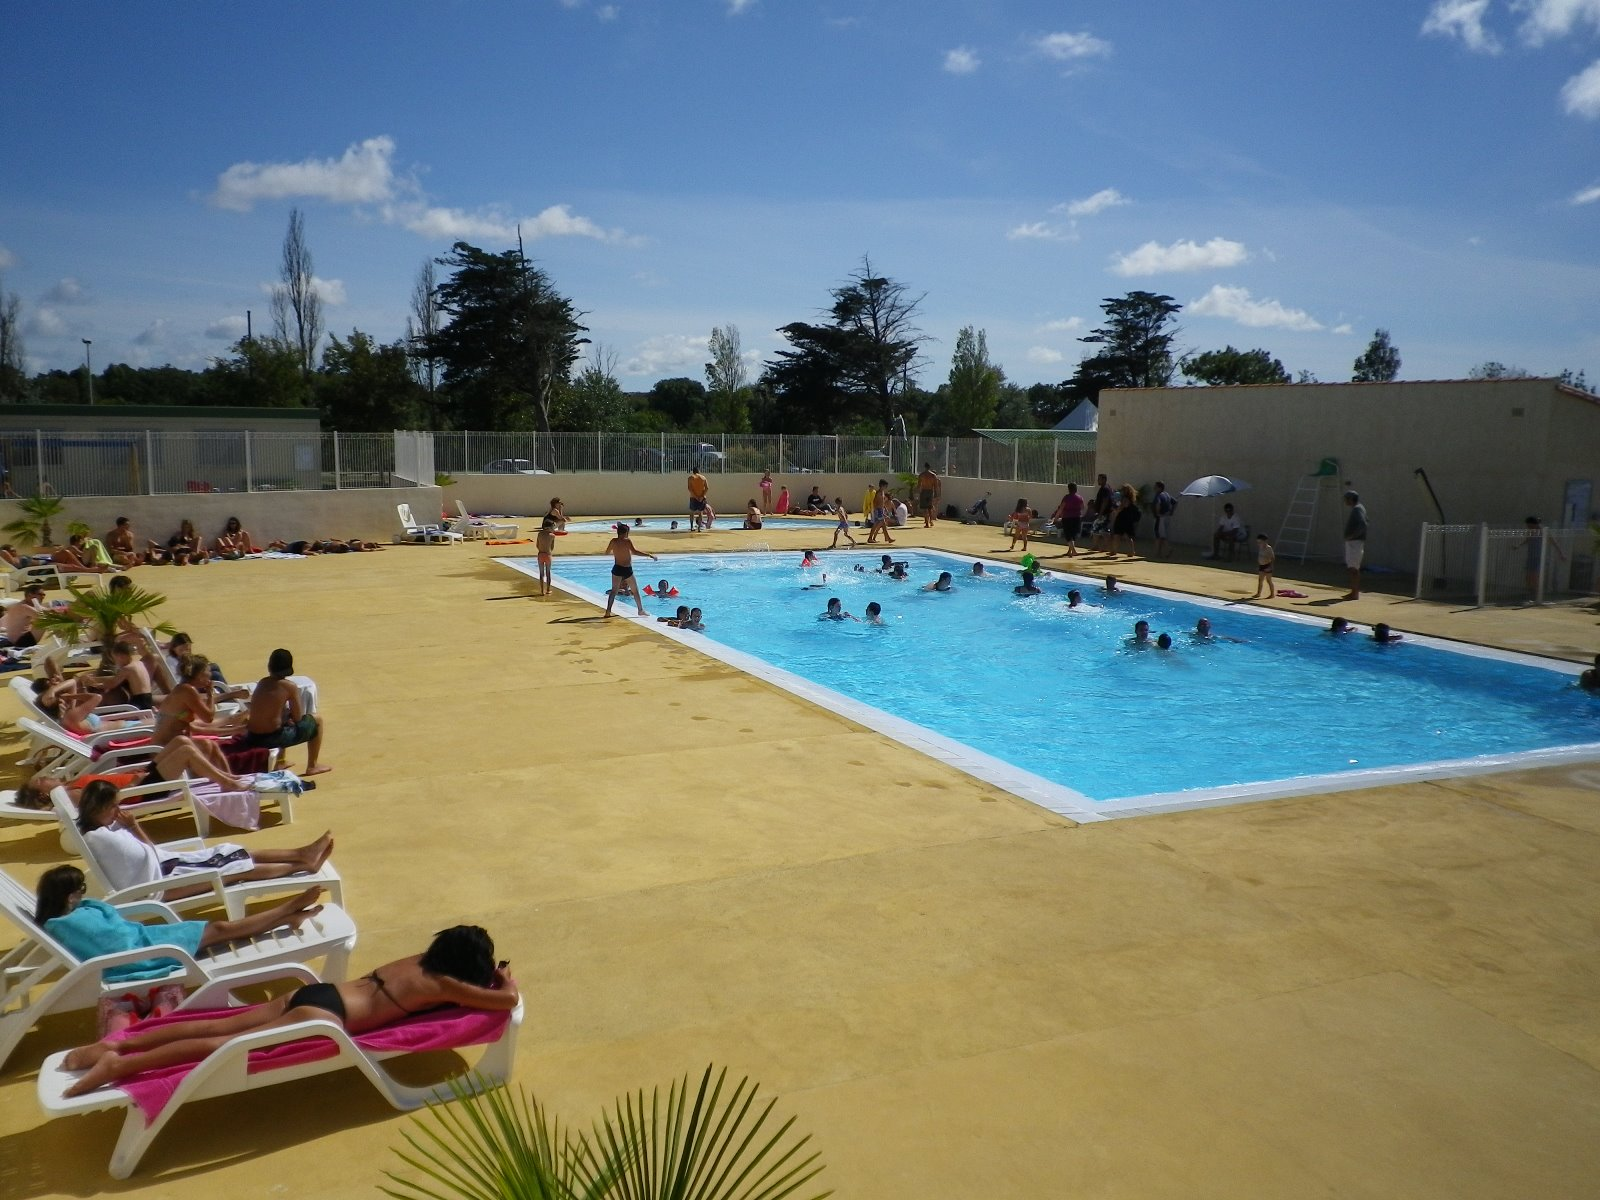 Pool And Paddling Pool   Activities Campsite Charente Maritime   Leisure  3 Star Campsite Near La Rochelle And Royan   Camping Municipal Port Des  Barques